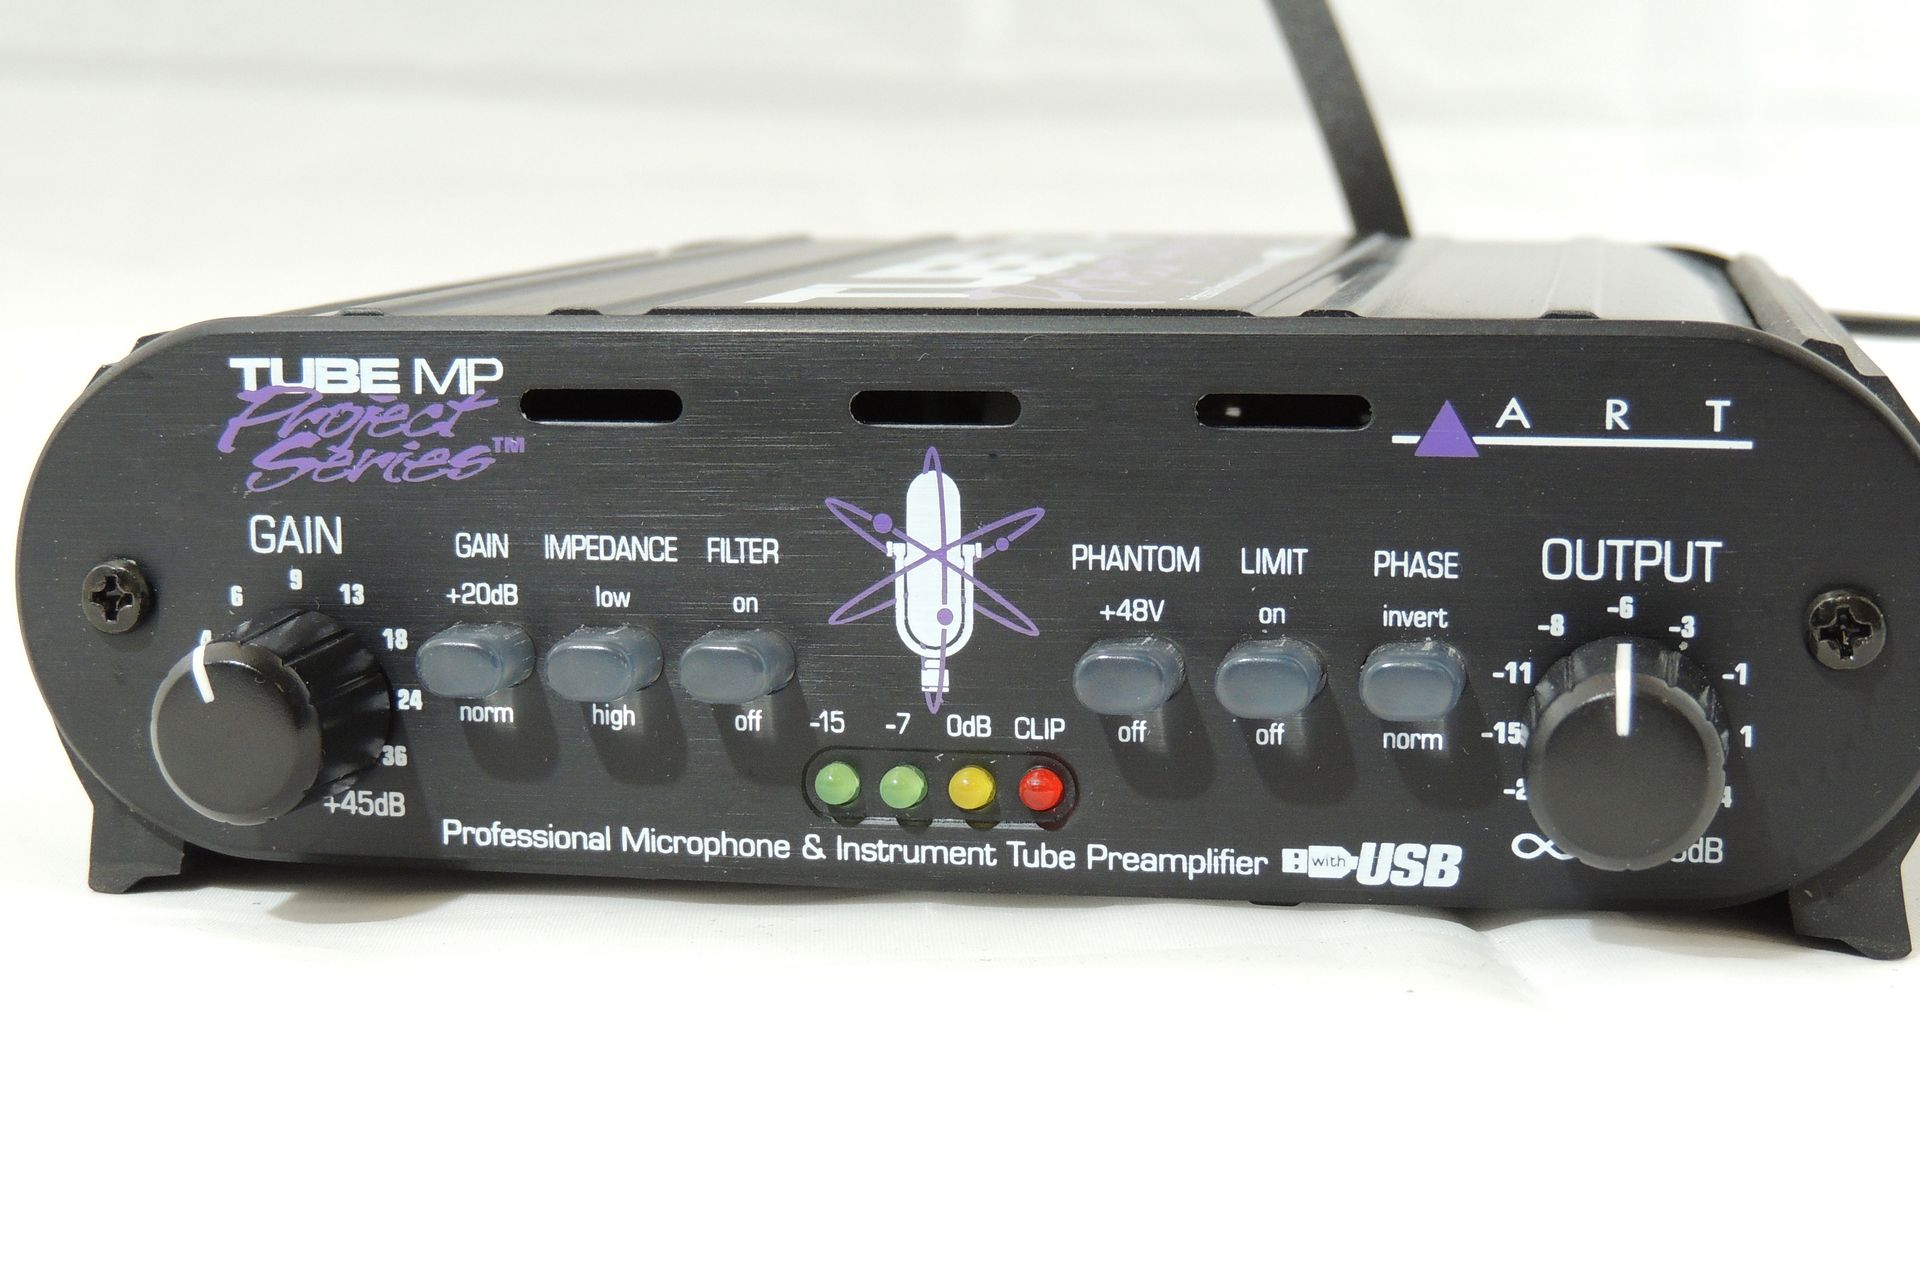 ART MP Tube microphone pre-amp with USB for sale at Plasma Music